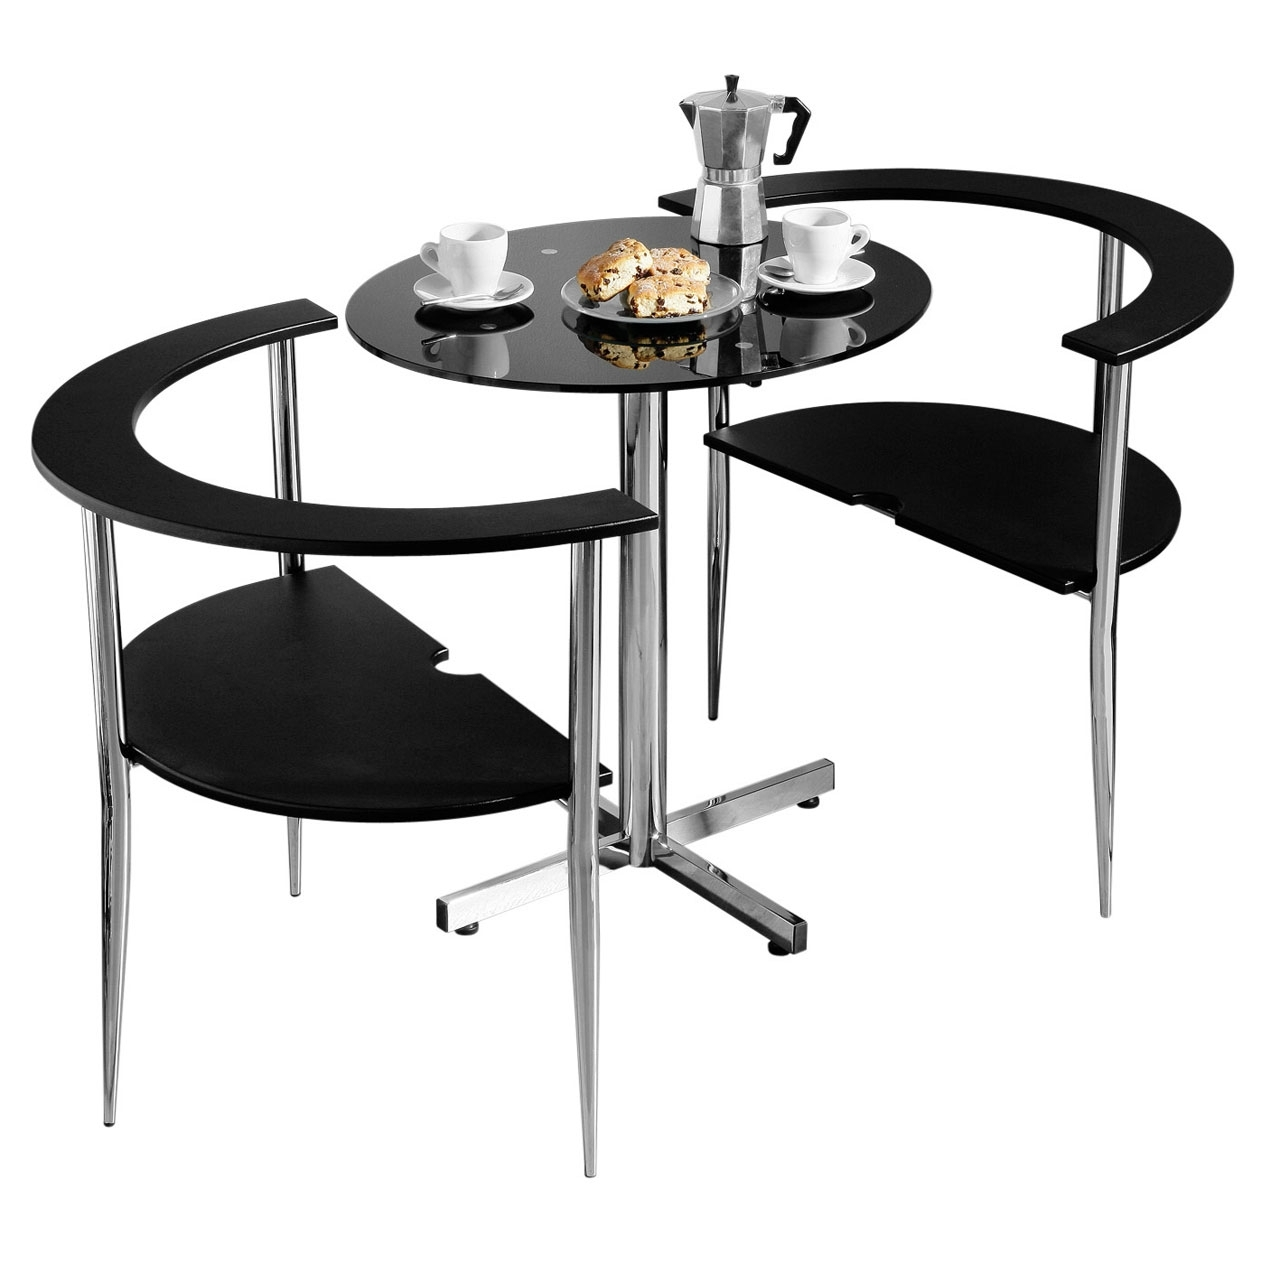 Most Current Dining Tables And Chairs For Two In 3Pc Round Love Dining Set Black Tempered Glass Table Top 2 Chairs (View 13 of 25)